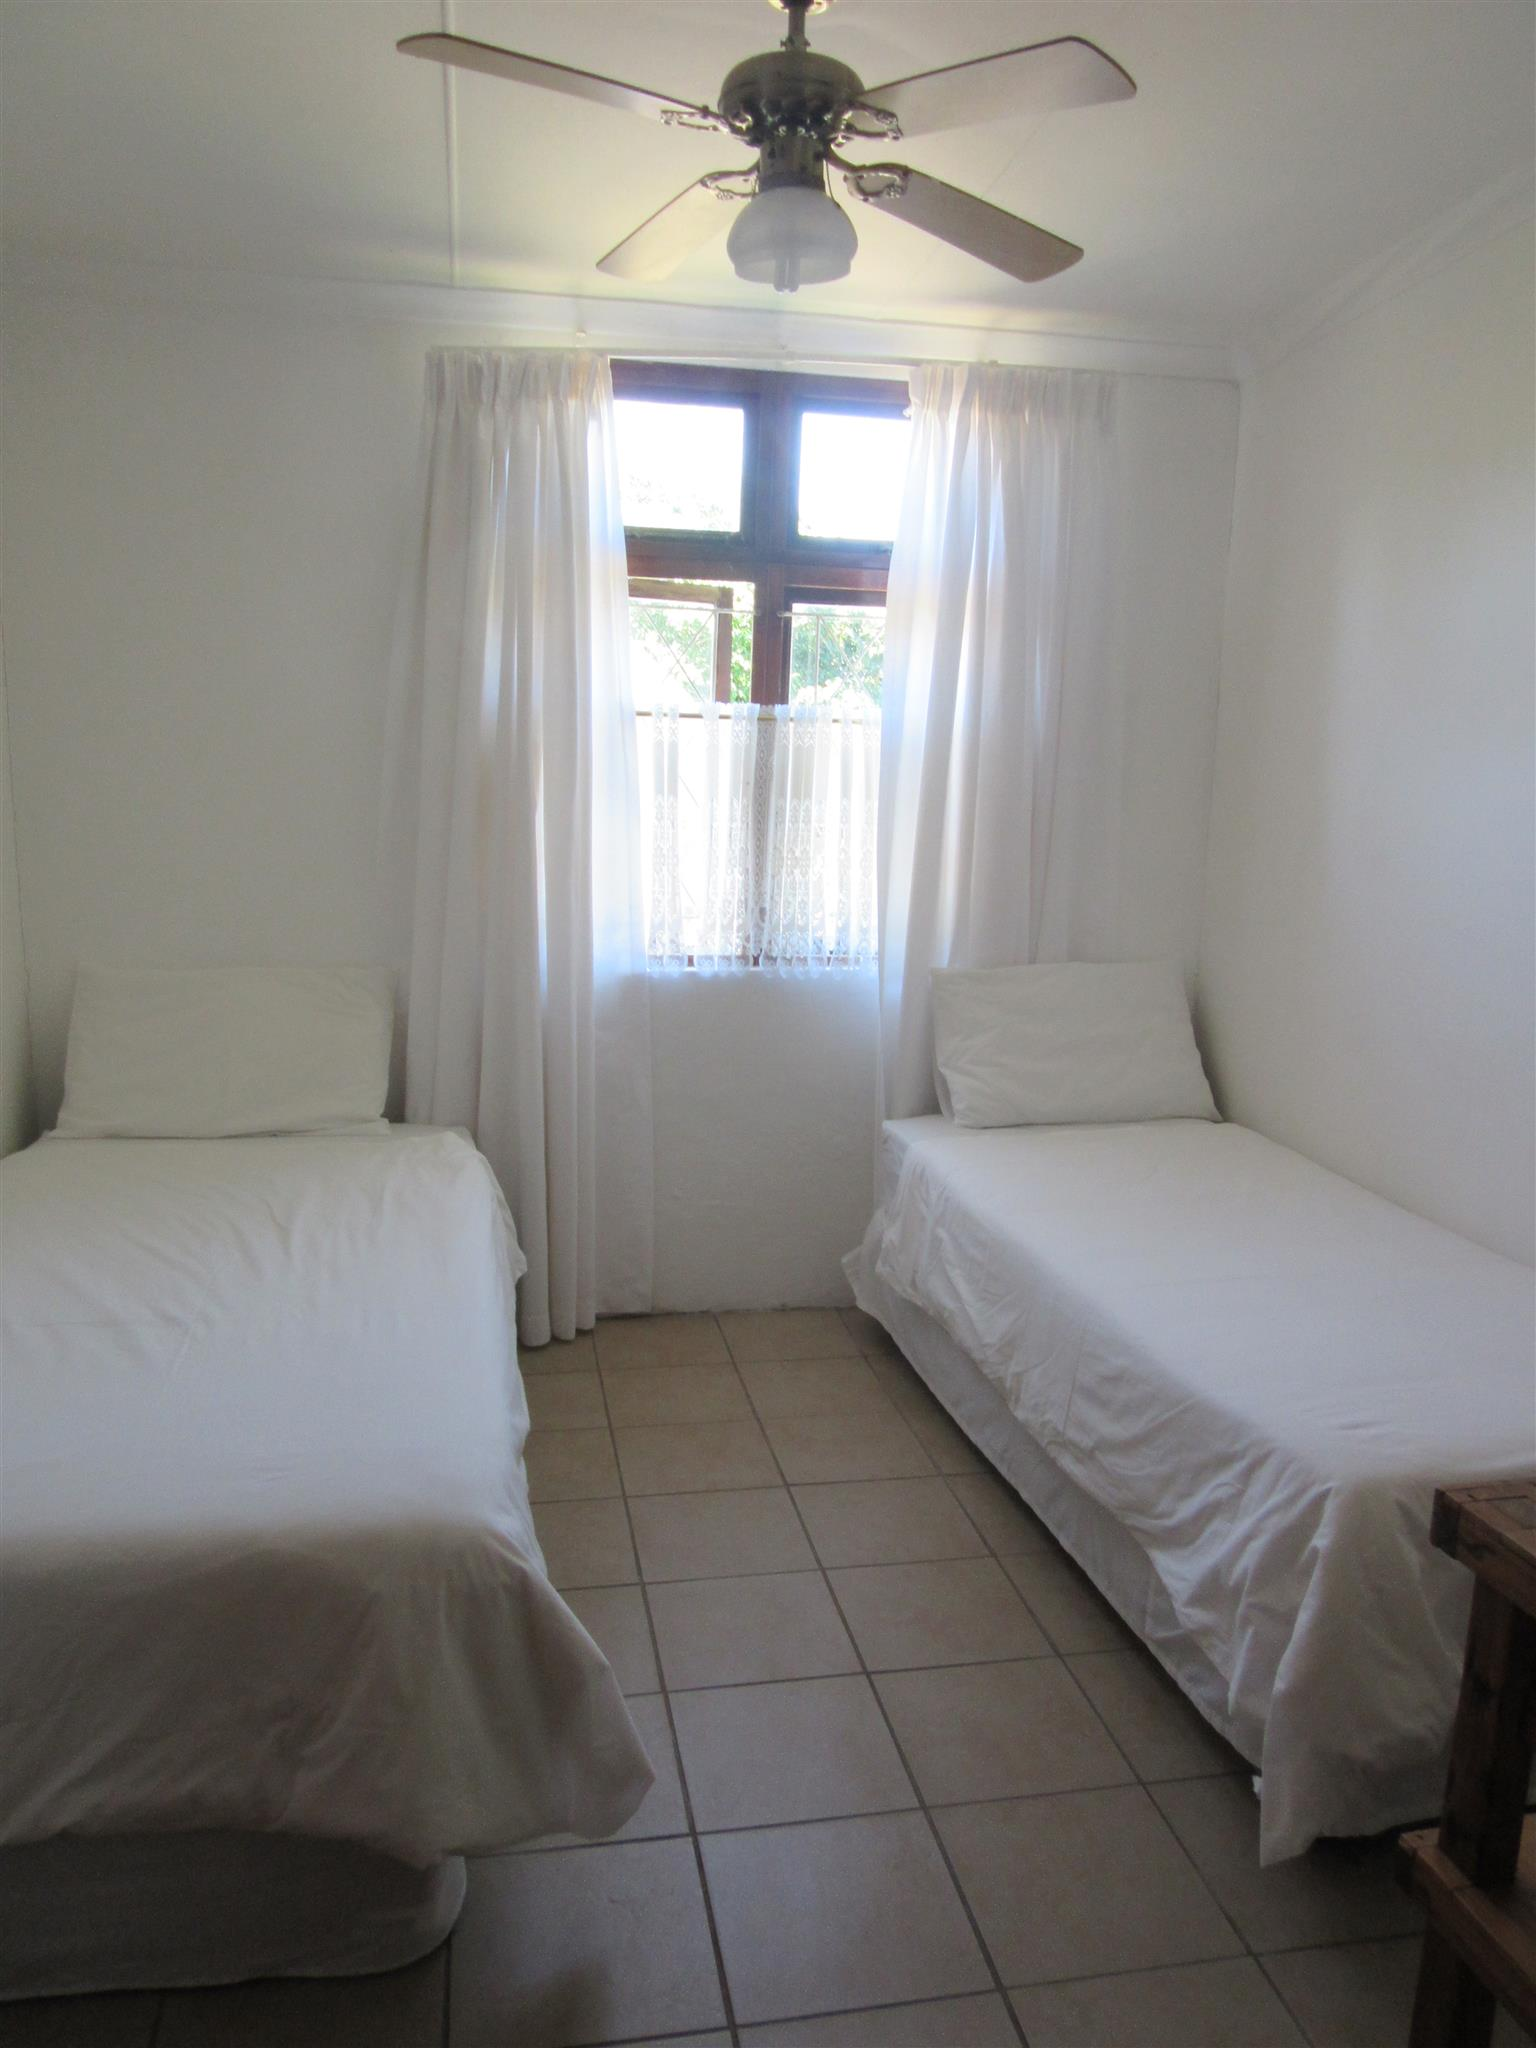 UMTENTWENI 4 BEDROOM FULLY FURNISHED SPACIOUS CHARACTER HOME SET IN LARGE GARDEN R7000 PER MONTH AVAILABLE JANUARY